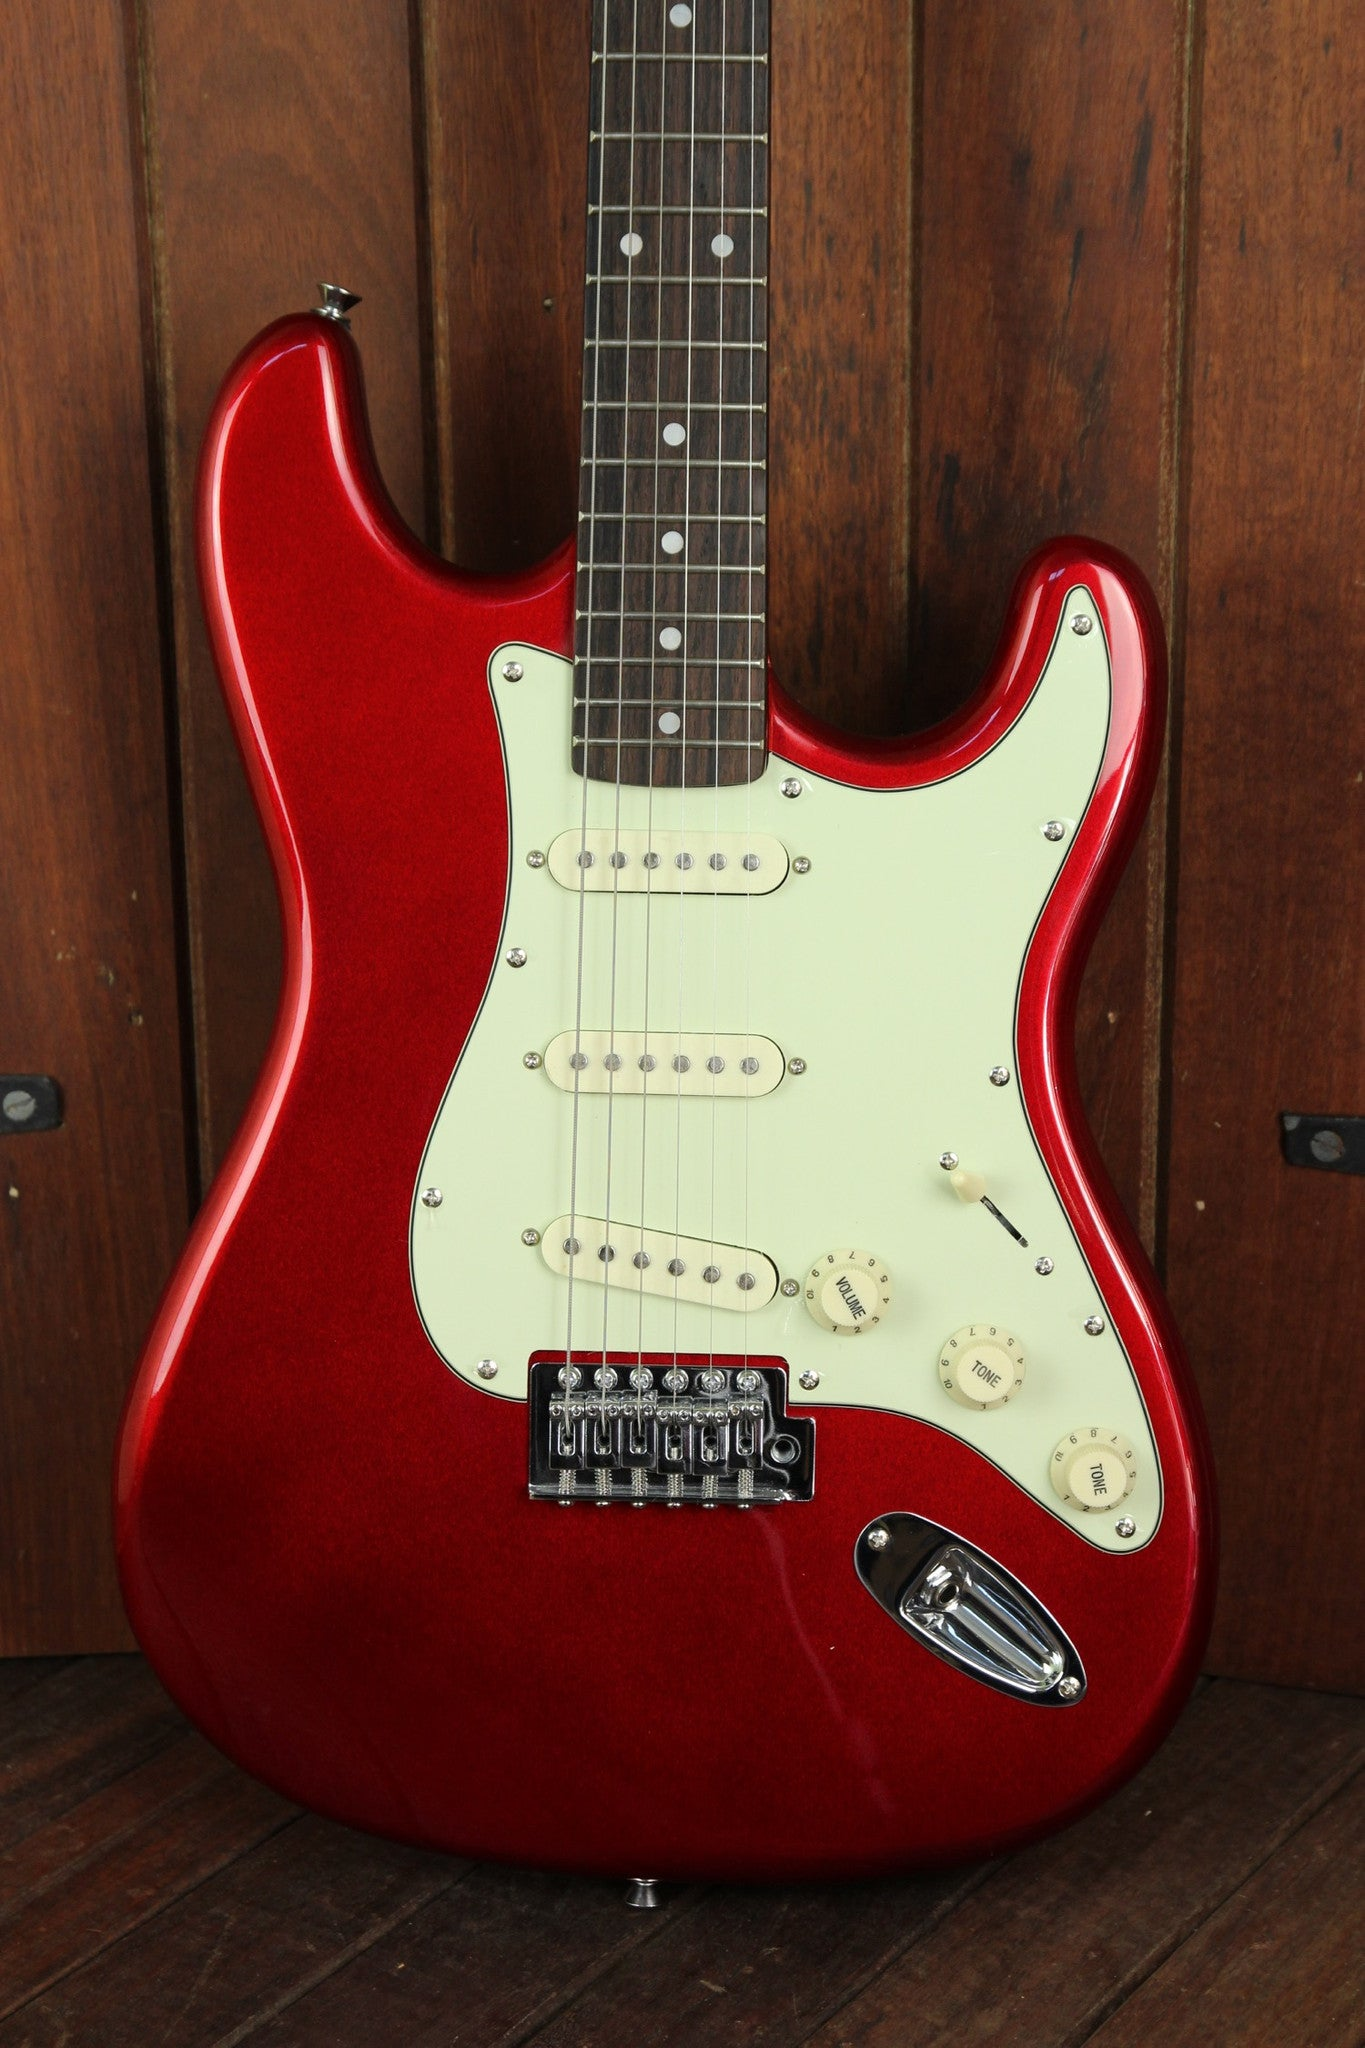 SX Vintage Style Electric Guitar Candy Apple Red - The Rock Inn - 1